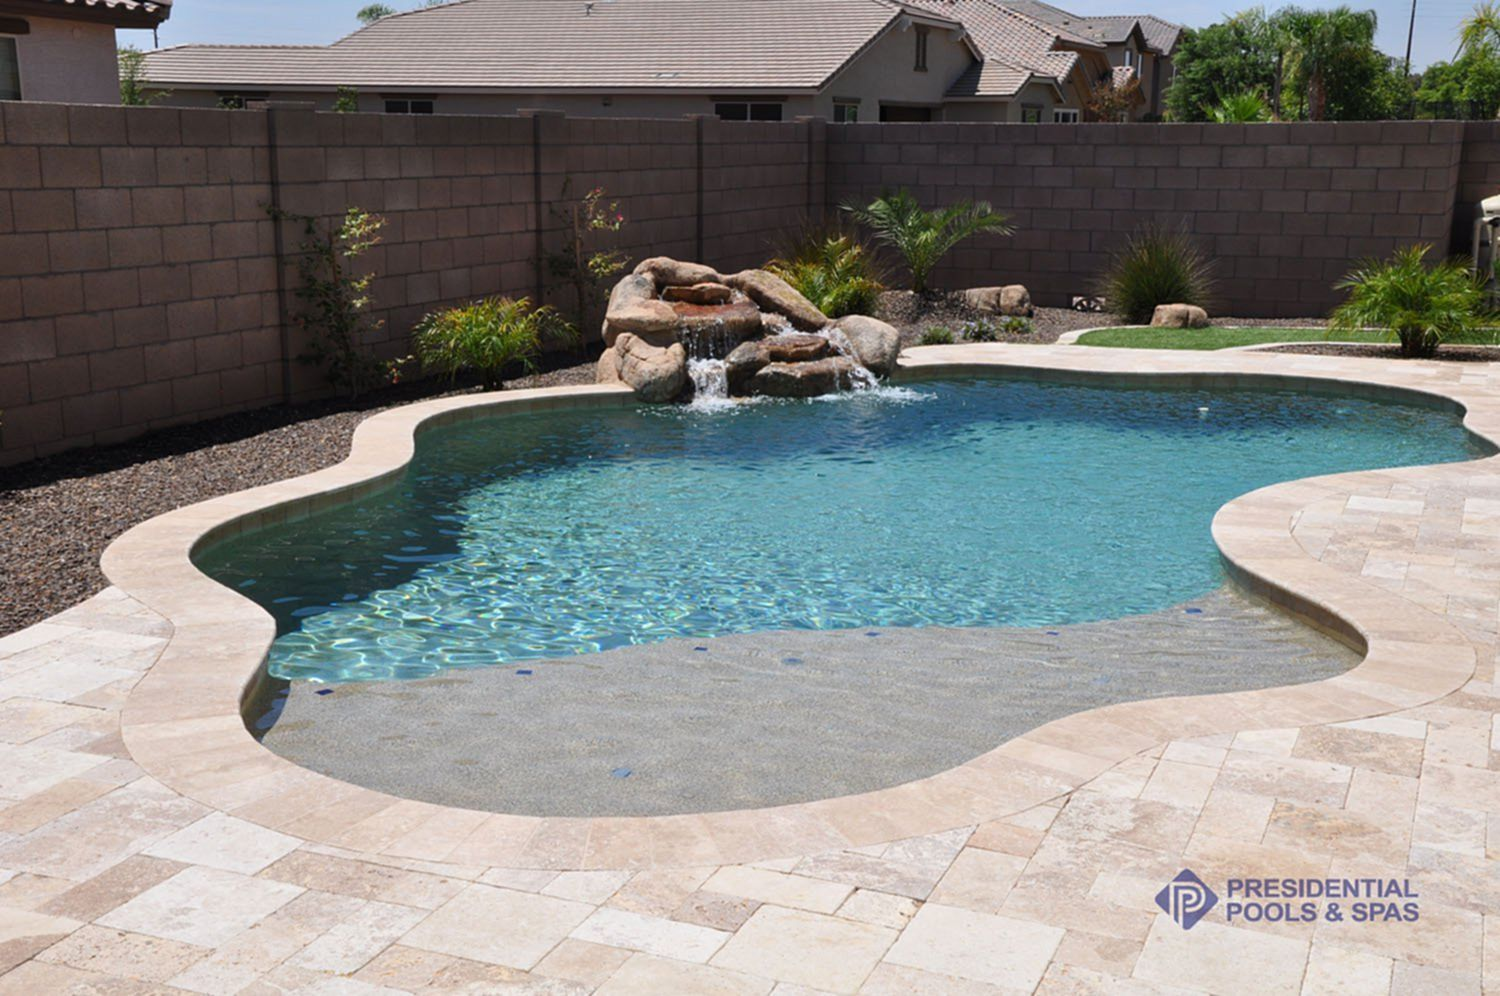 Cool 160 Marvelous Small Pool Design Ideas For Your Small Yard Http Goodsgn Com Gardens 160 Marvelo Small Pool Design Backyard Pool Designs Pool Landscaping